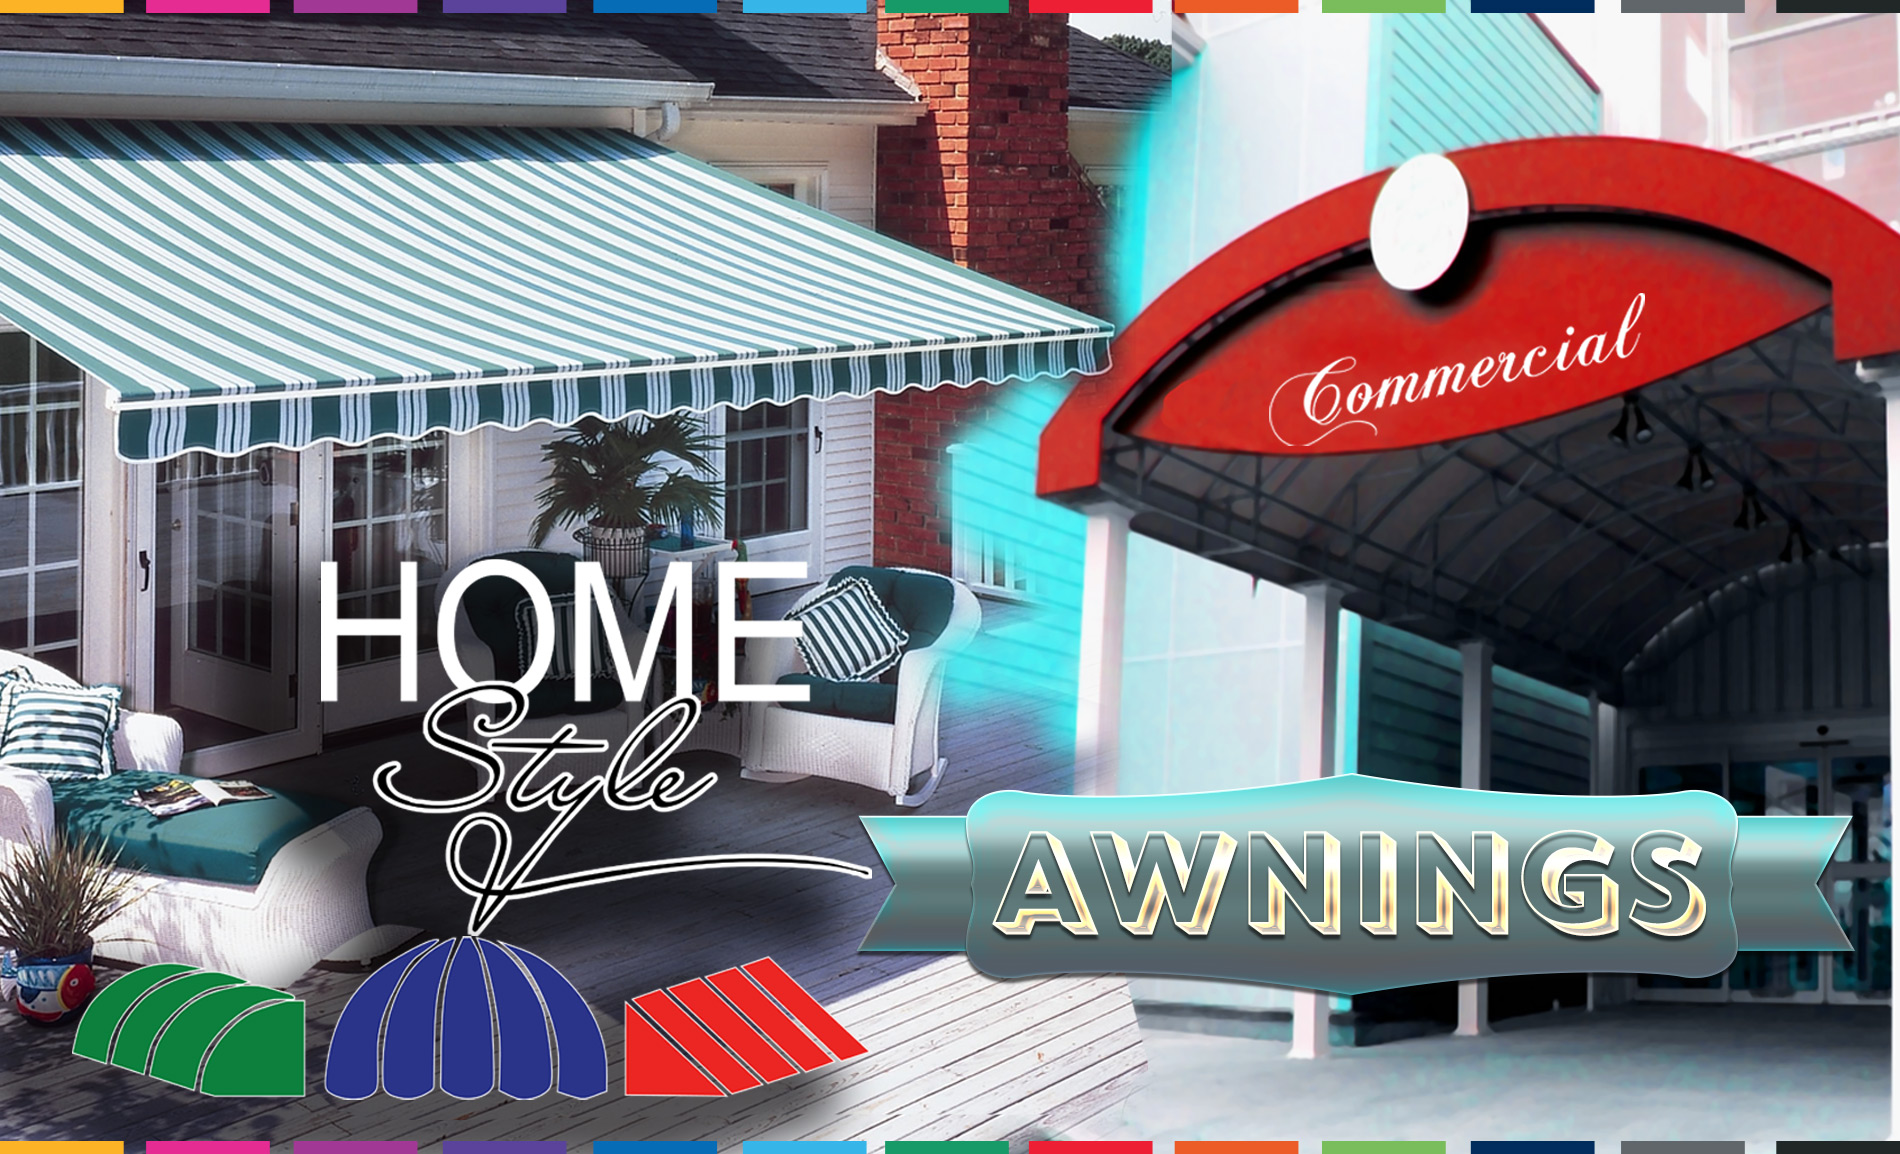 Home Version 9 - awnings - Store